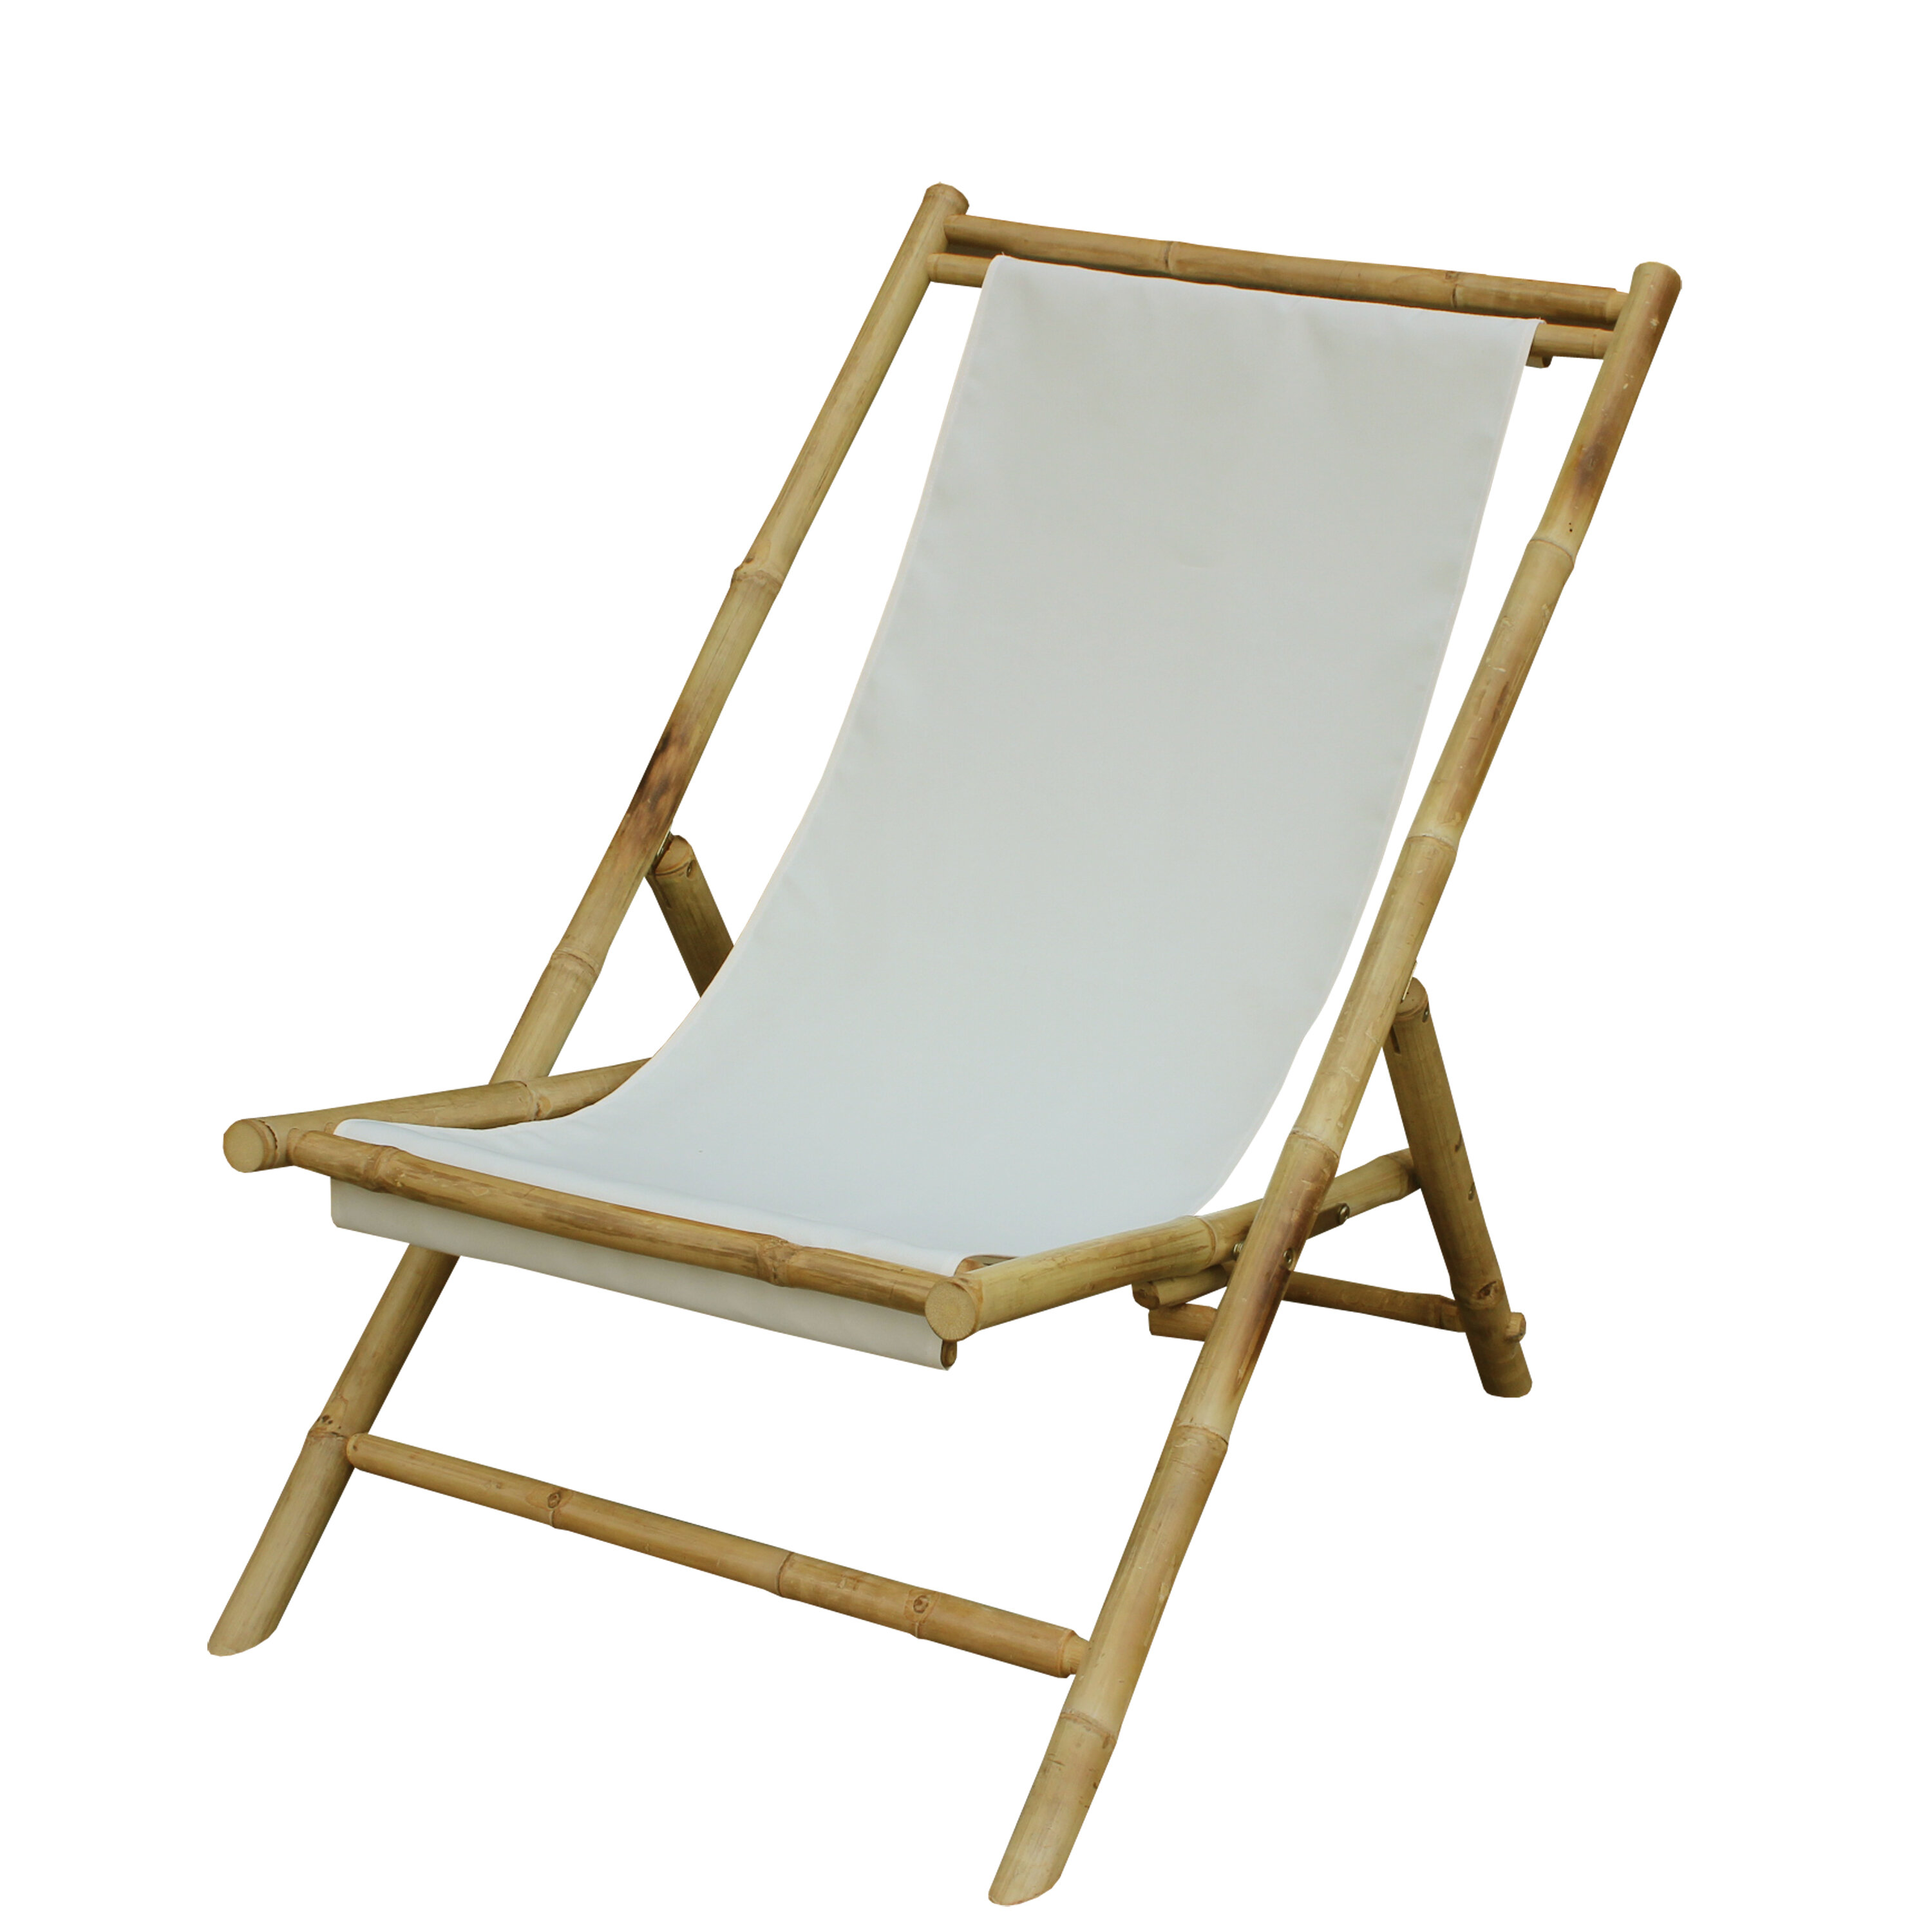 pavilion chairs brighton bamboo pair chairish chair tortoise product a